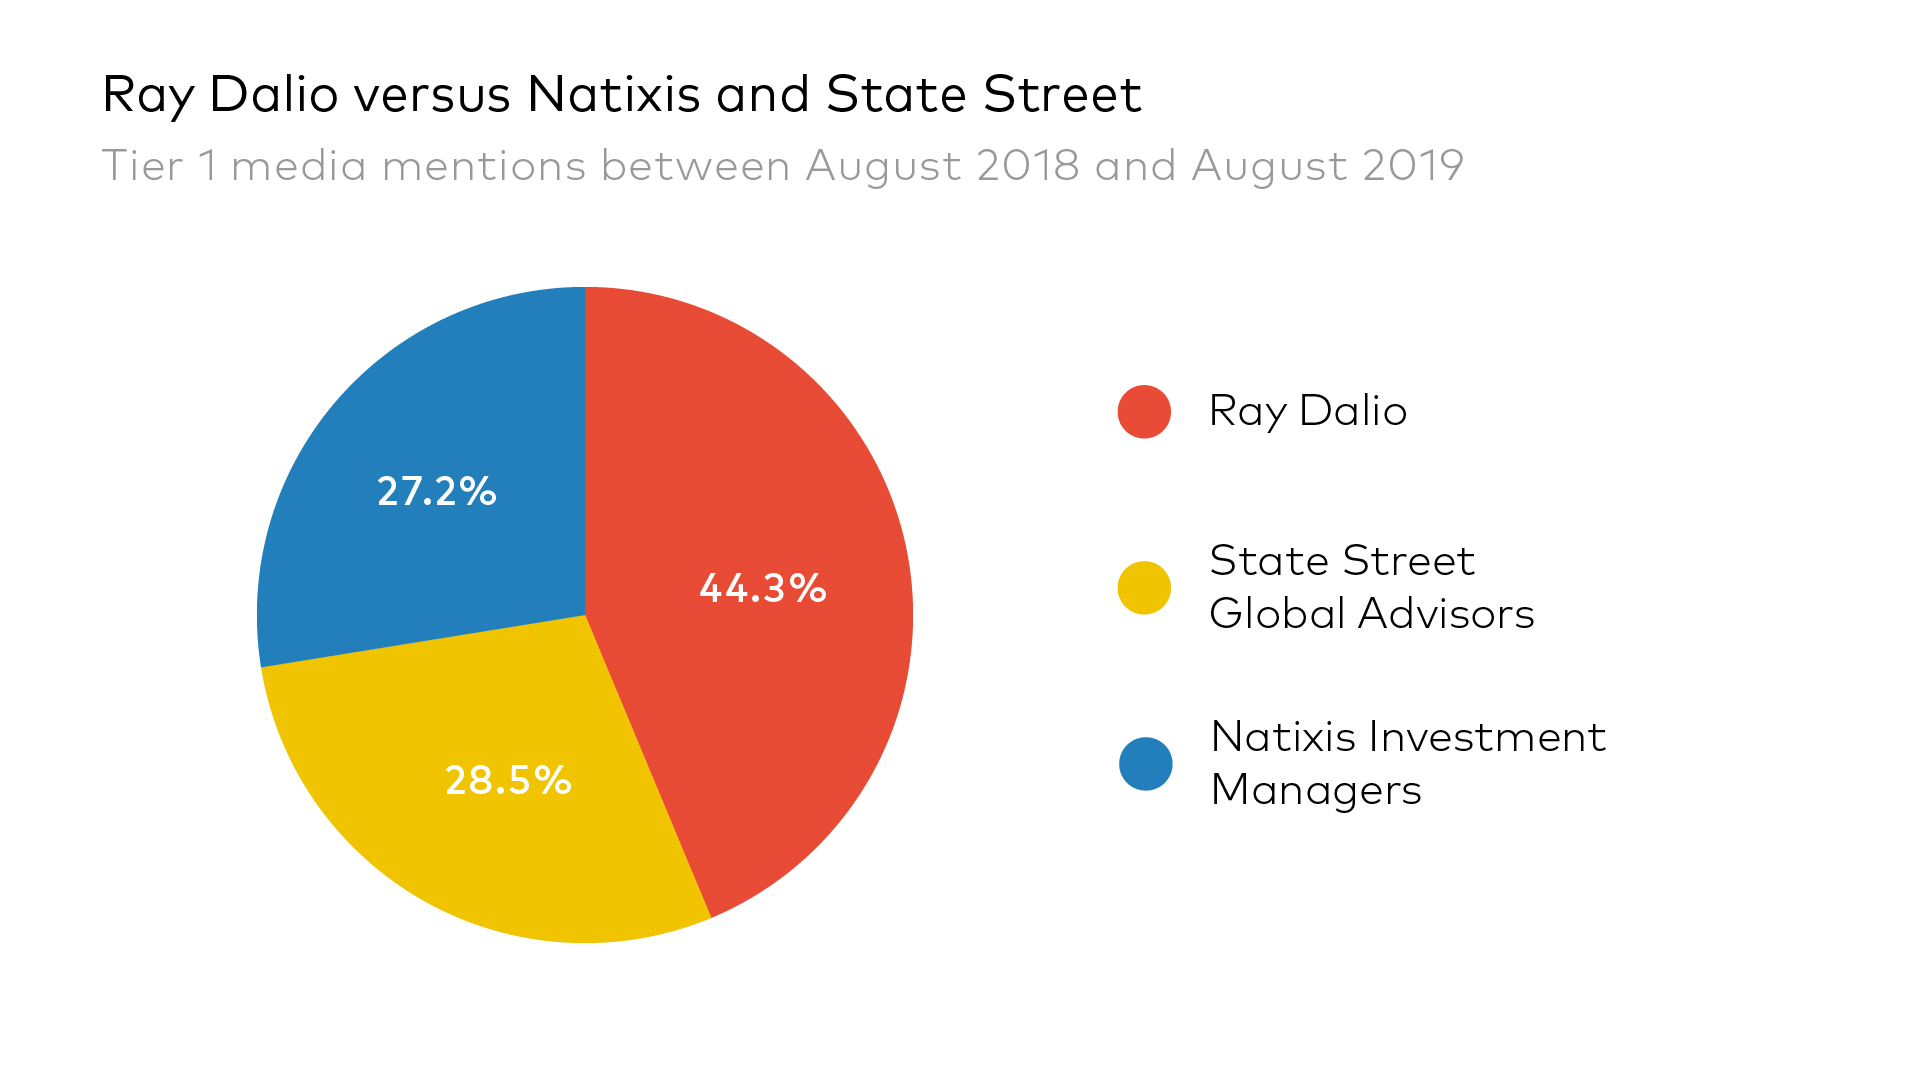 Ray Dalio versus Natixis and State Street